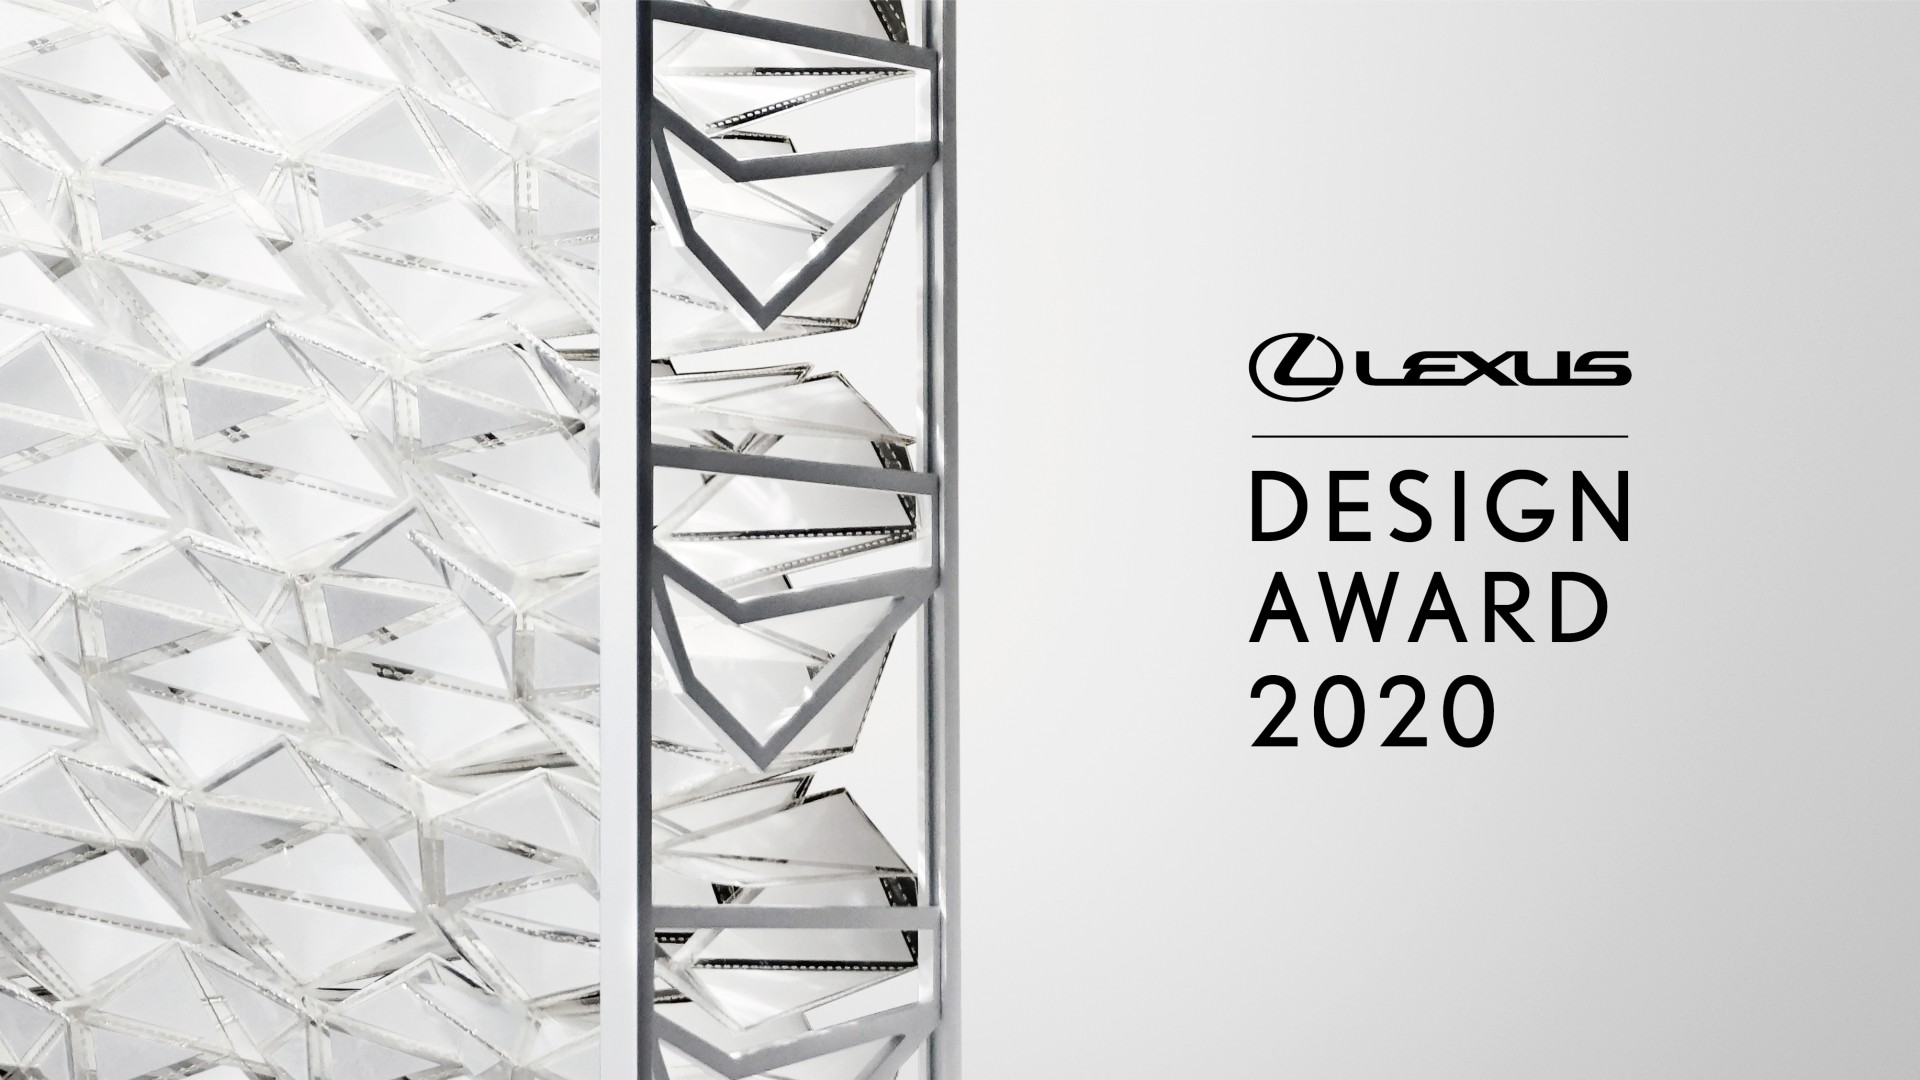 Lexus Design Award 2020 main visual